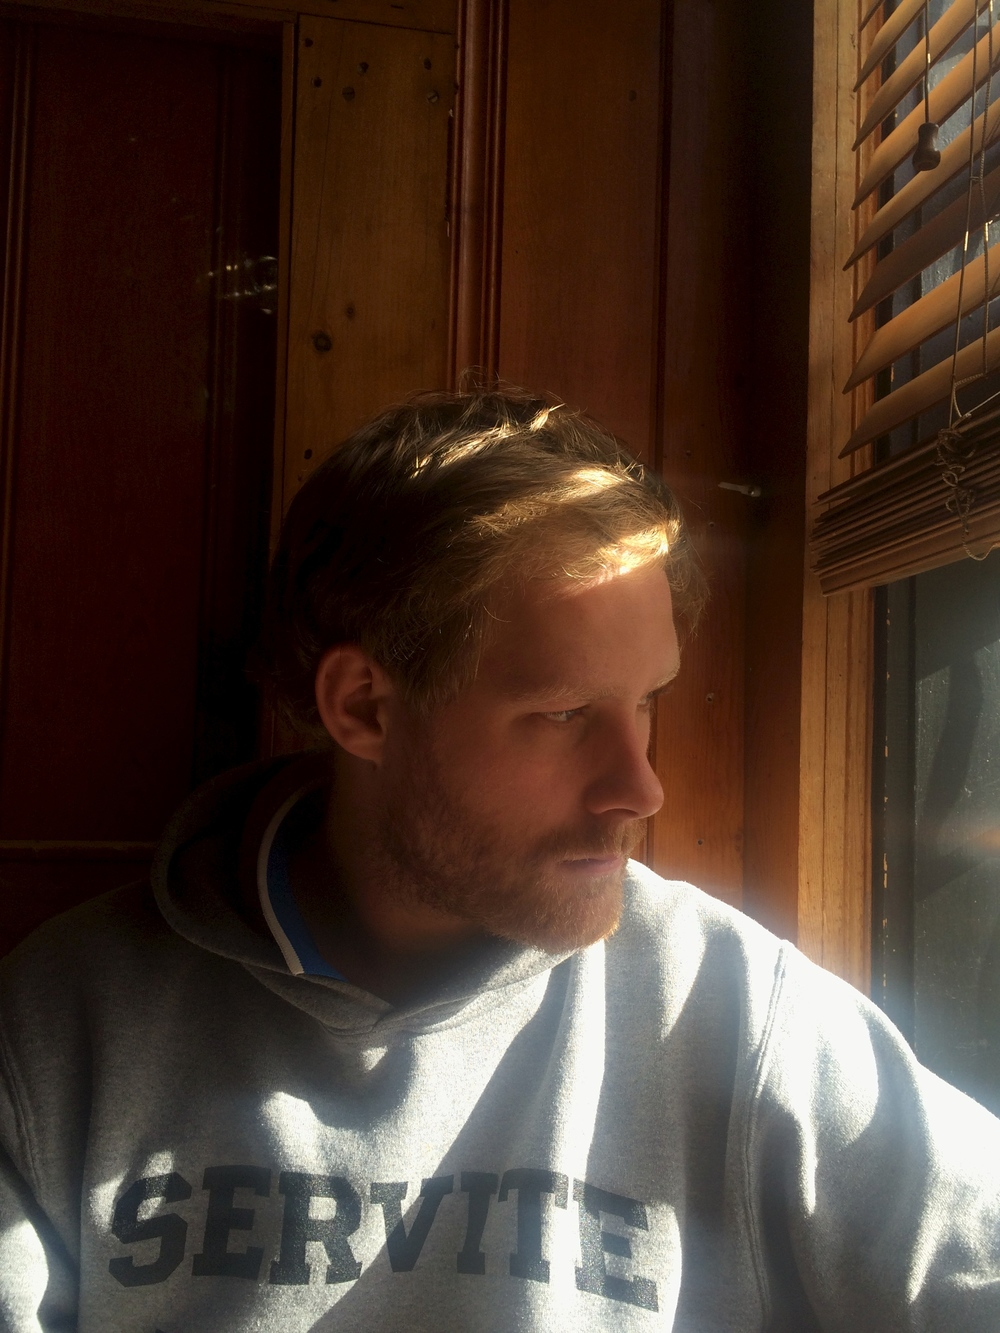 This picture makes Franz look like he's balding (sorry Bro!), but I like how the blinds look.